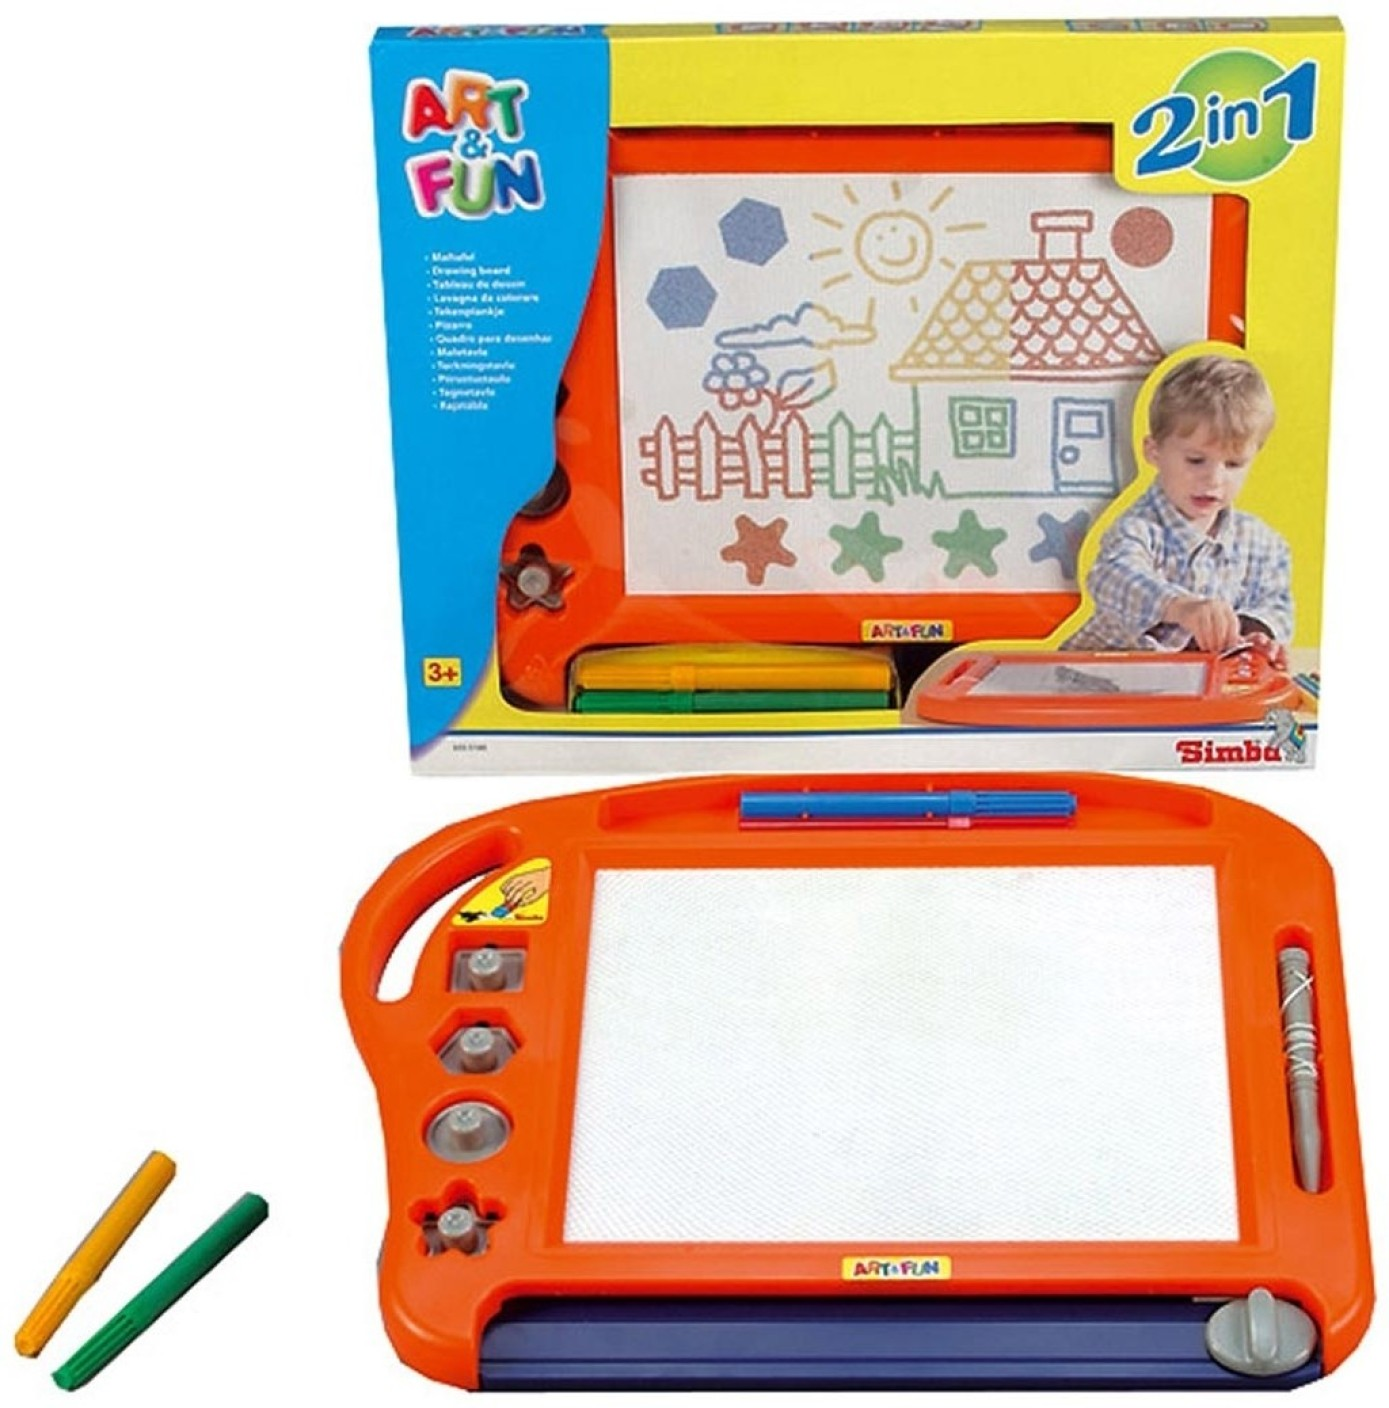 Art Educational Toys : Simba art and fun colour magnetic drawing board price in